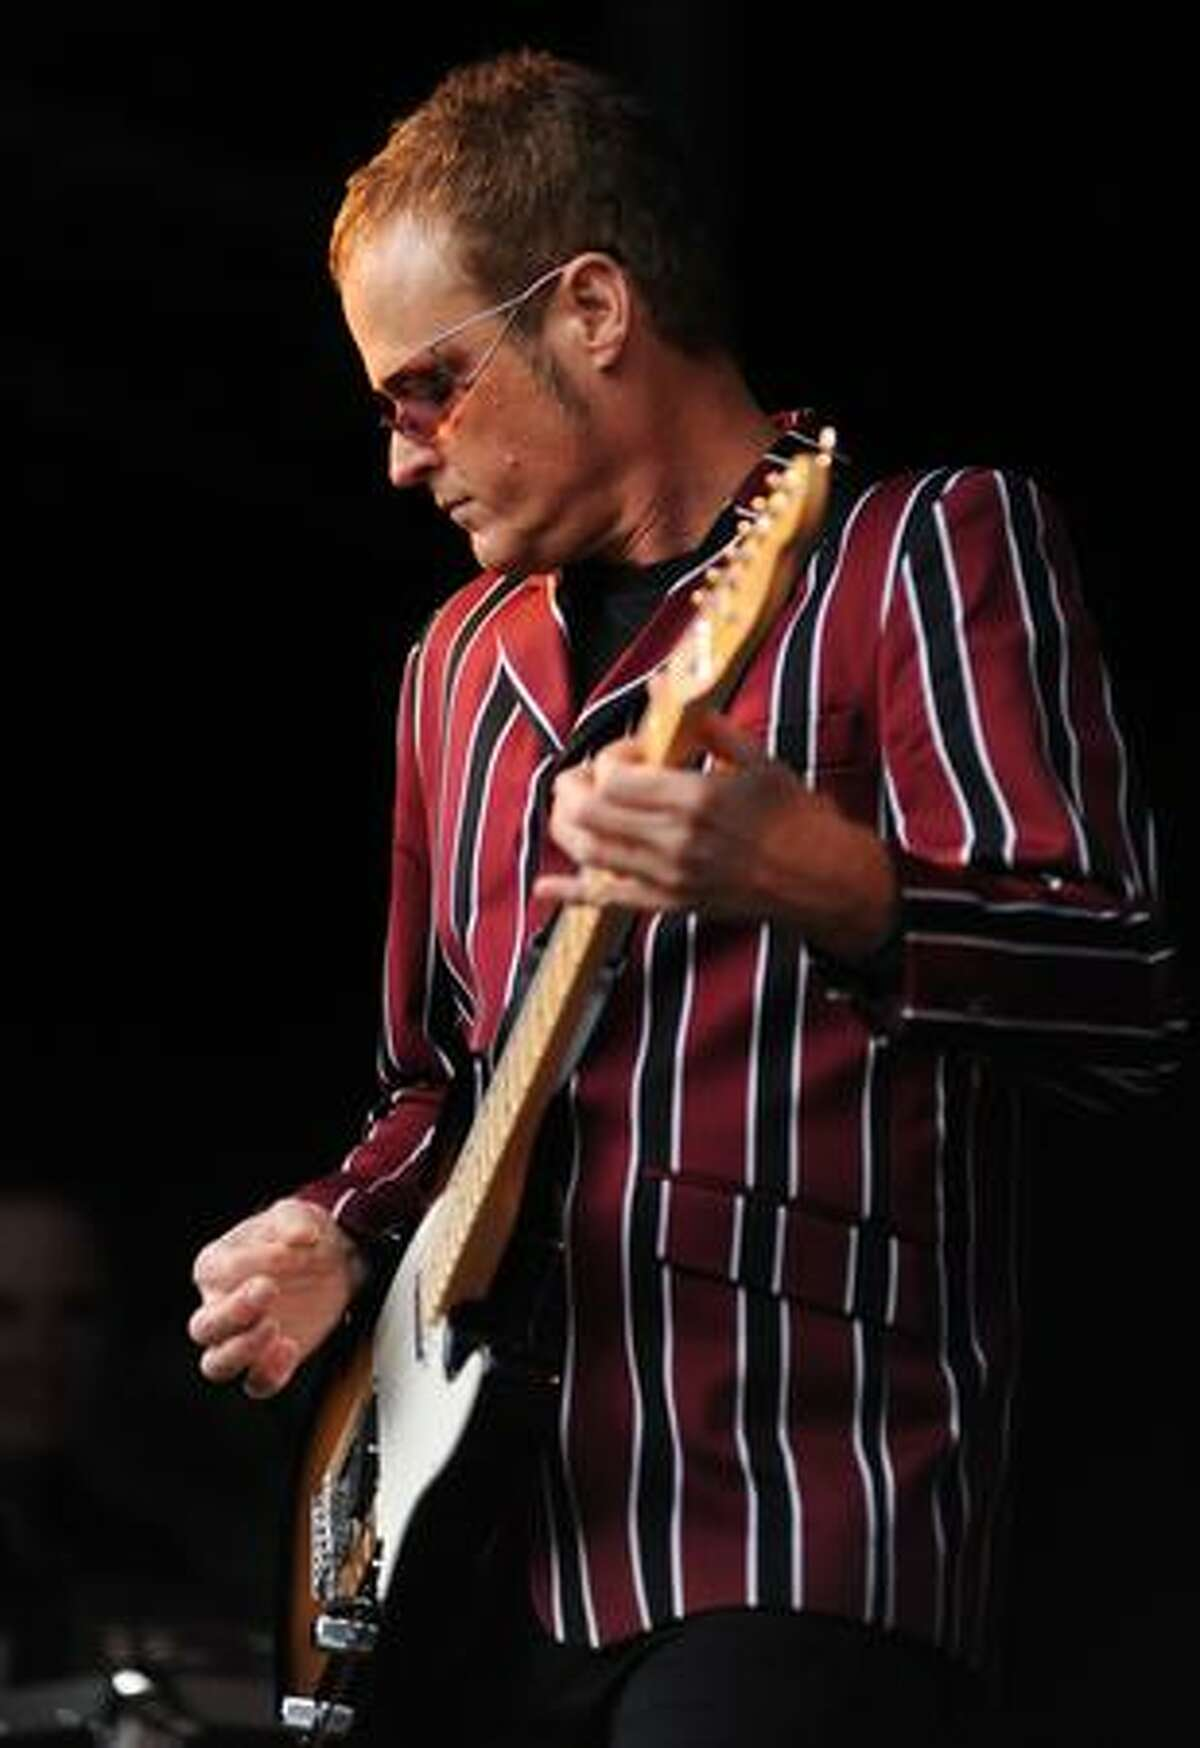 B-52s guitarist Keith Strickland performs at the Woodland Park Zoo.